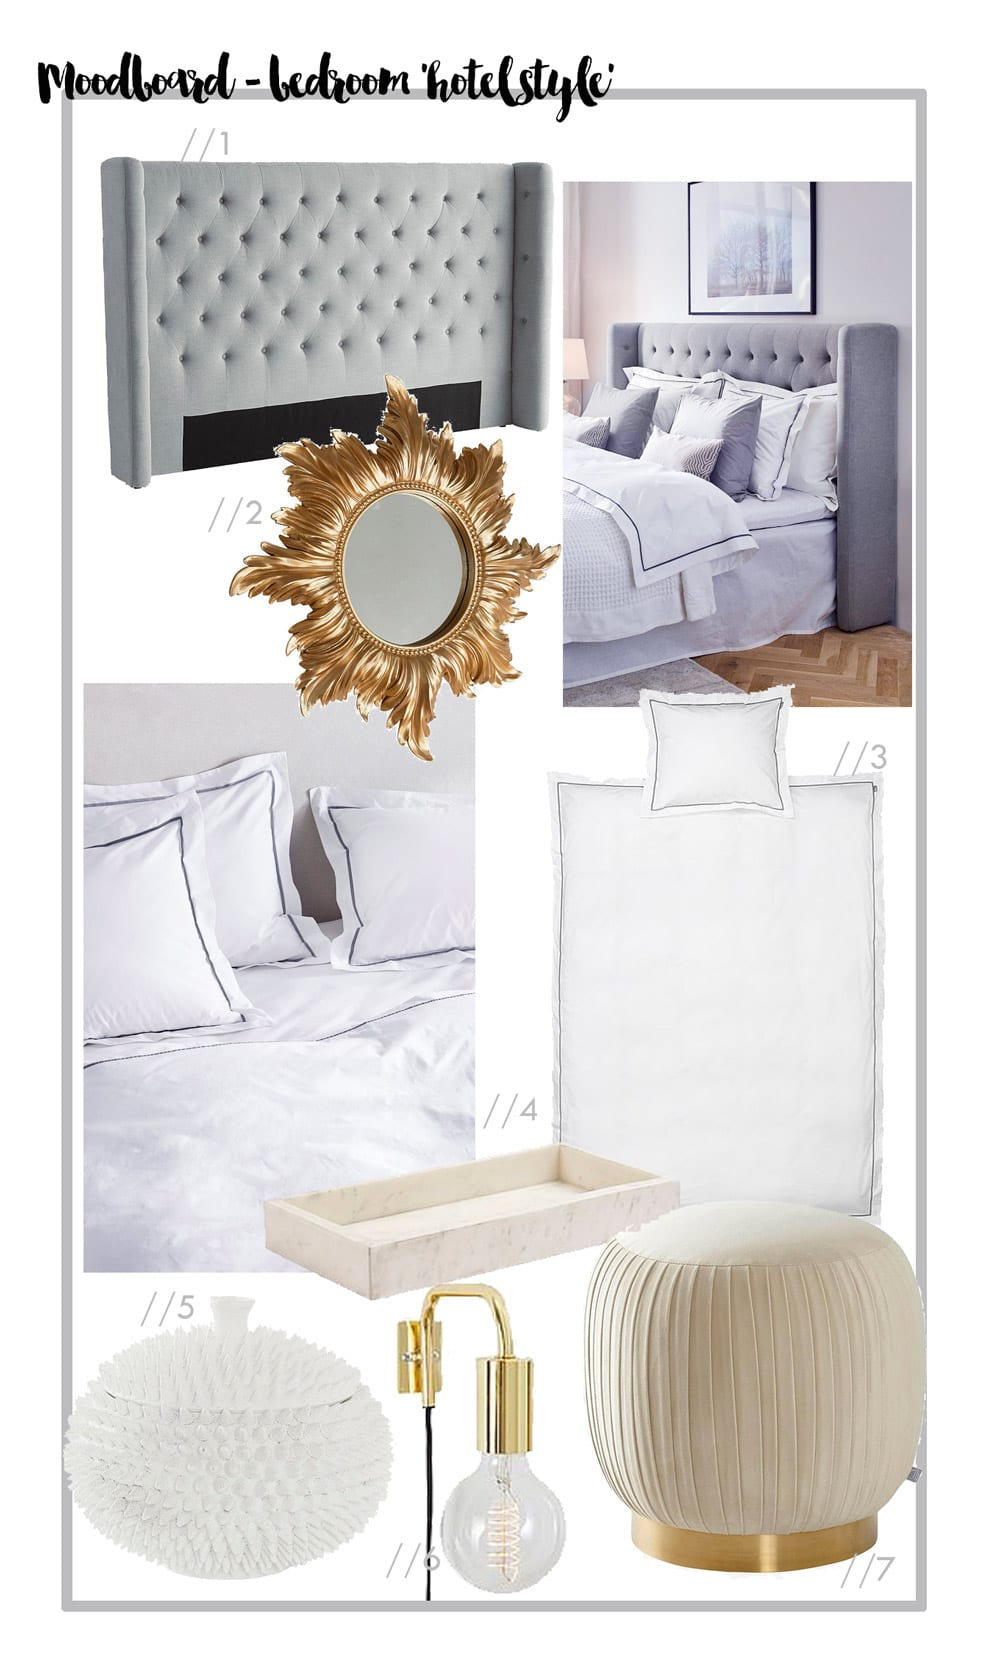 moodboard-jotex-sengegavel-sovevarelse-puf-sofa